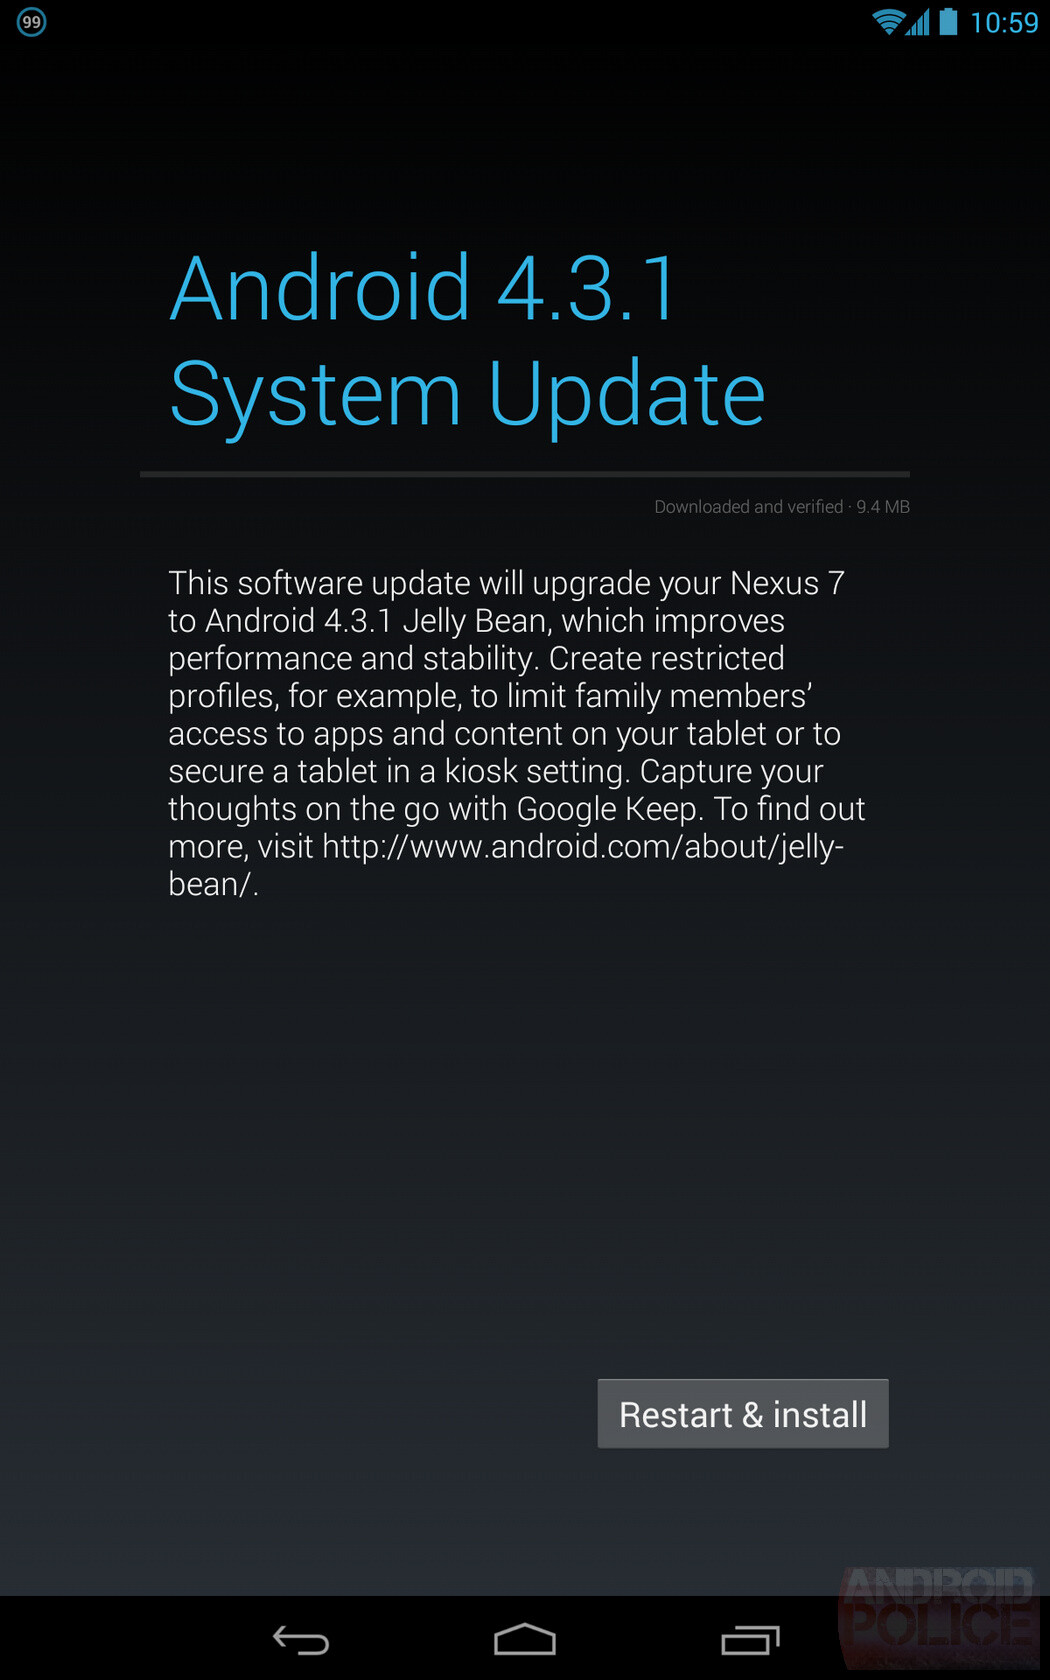 Android 4.3.1 update surprises Nexus 7 2013 owners ...